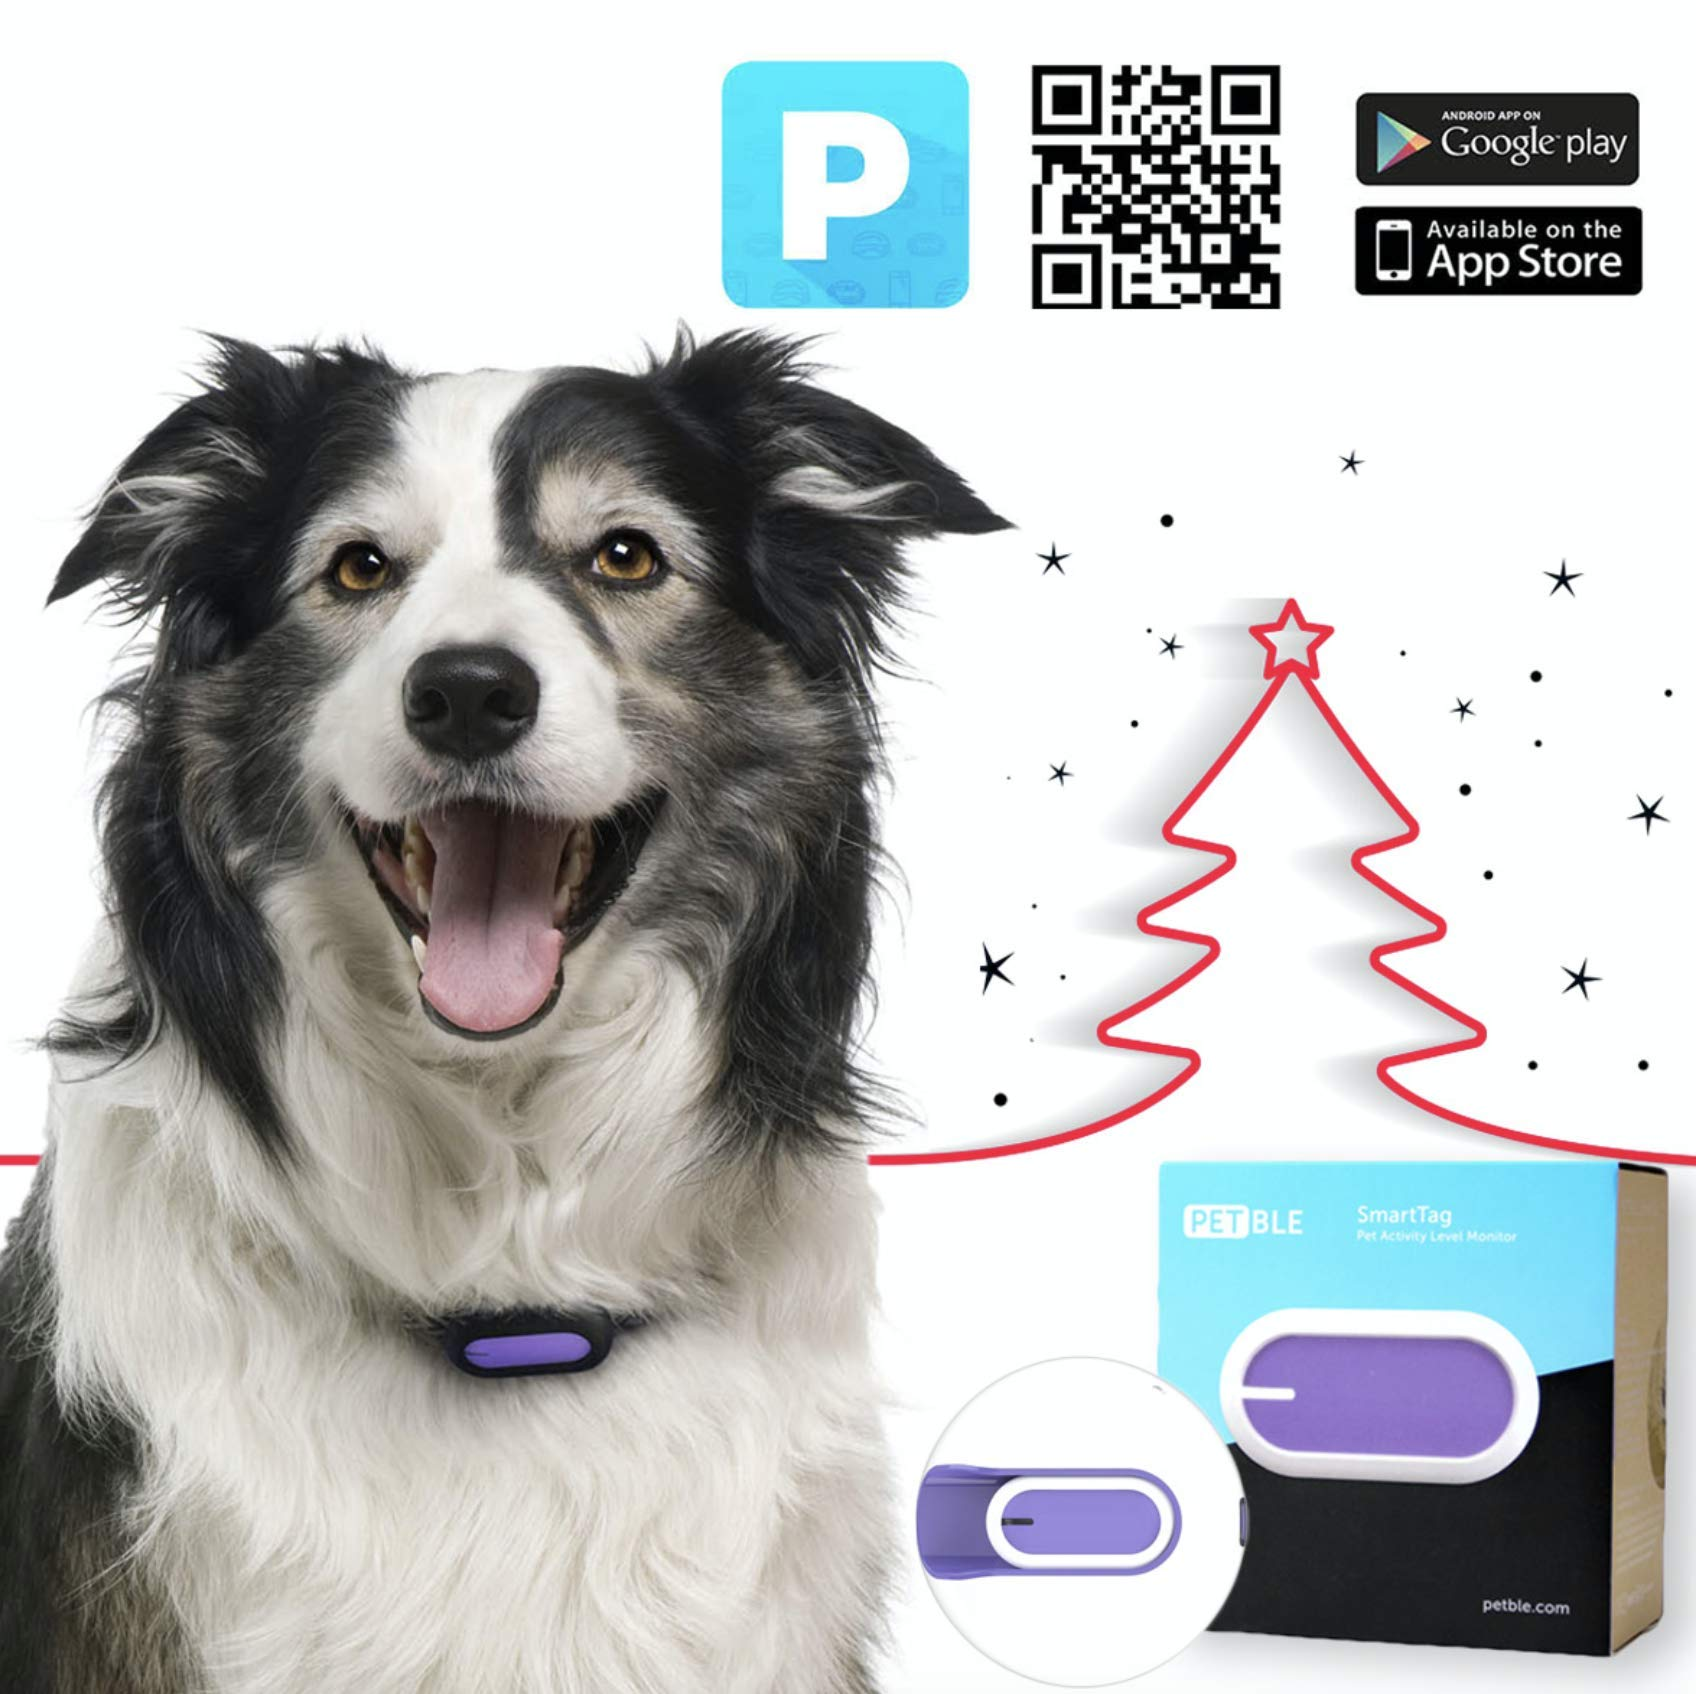 PETBLE Dog Cat Pet Smart Tag Tracker - Portable Bluetooth Wireless 4.0 Lightweight, Waterproof, Compatible with Multiple Smart Devices 24/7 Activity Monitor Pet Health Tracker for IOS Android (Purple) by PETBLE